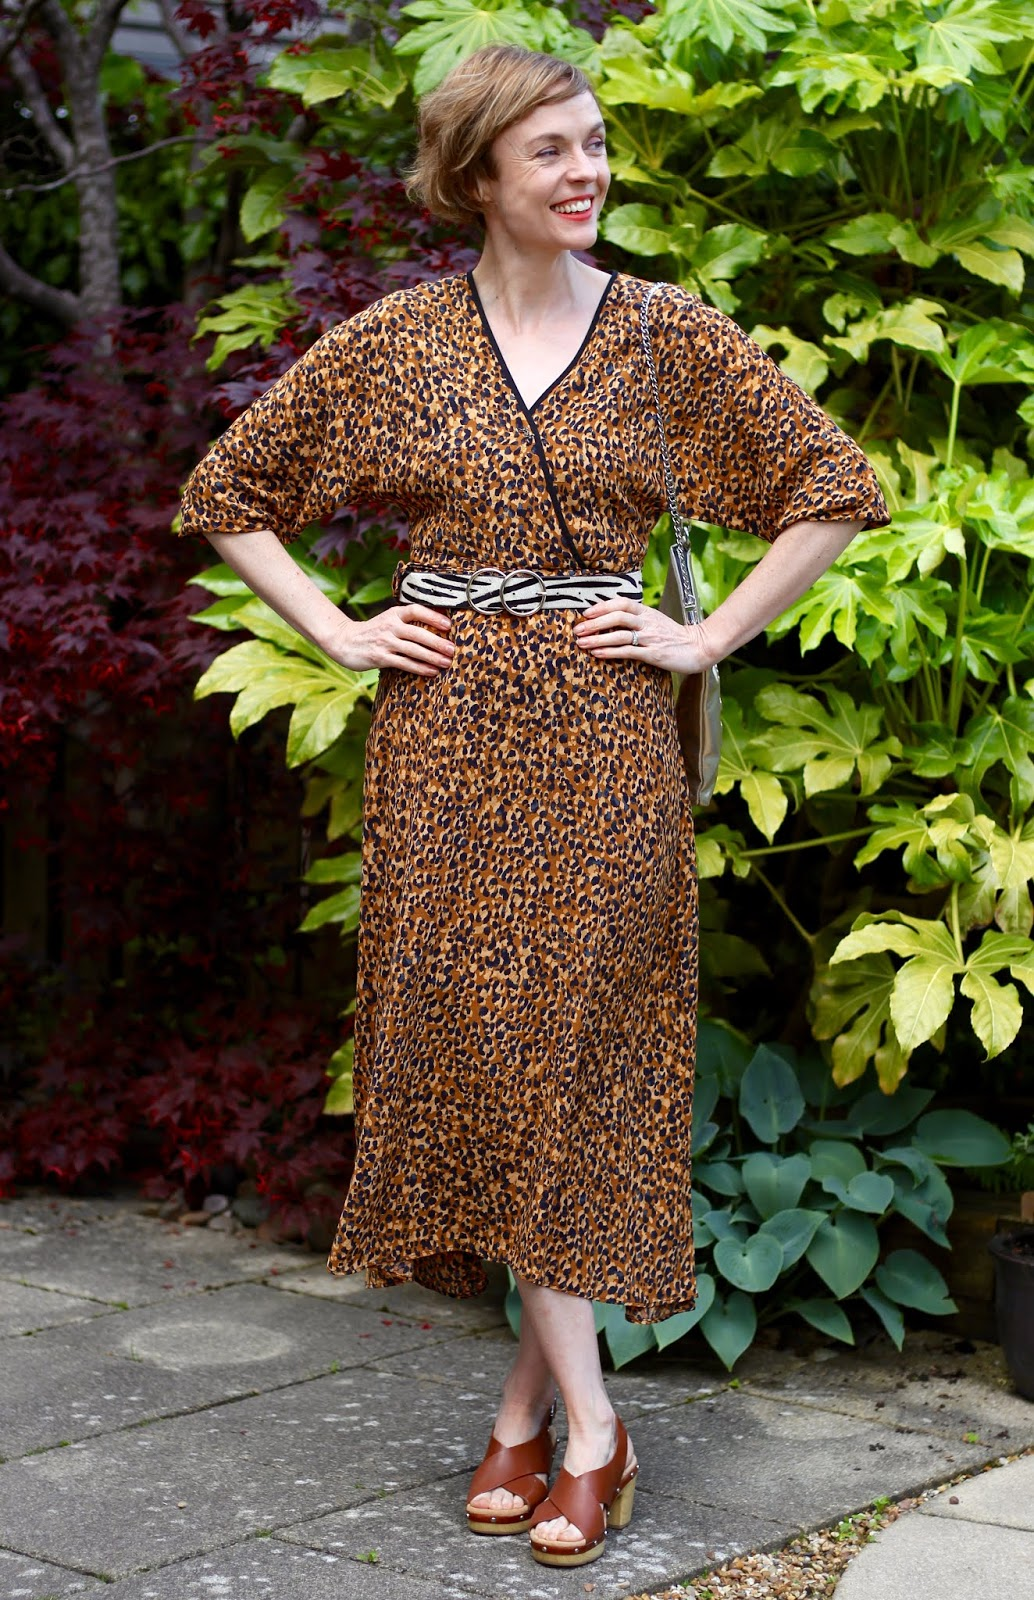 Leopard midi dress, zebra belt and tan sandals | Fake Fabulous